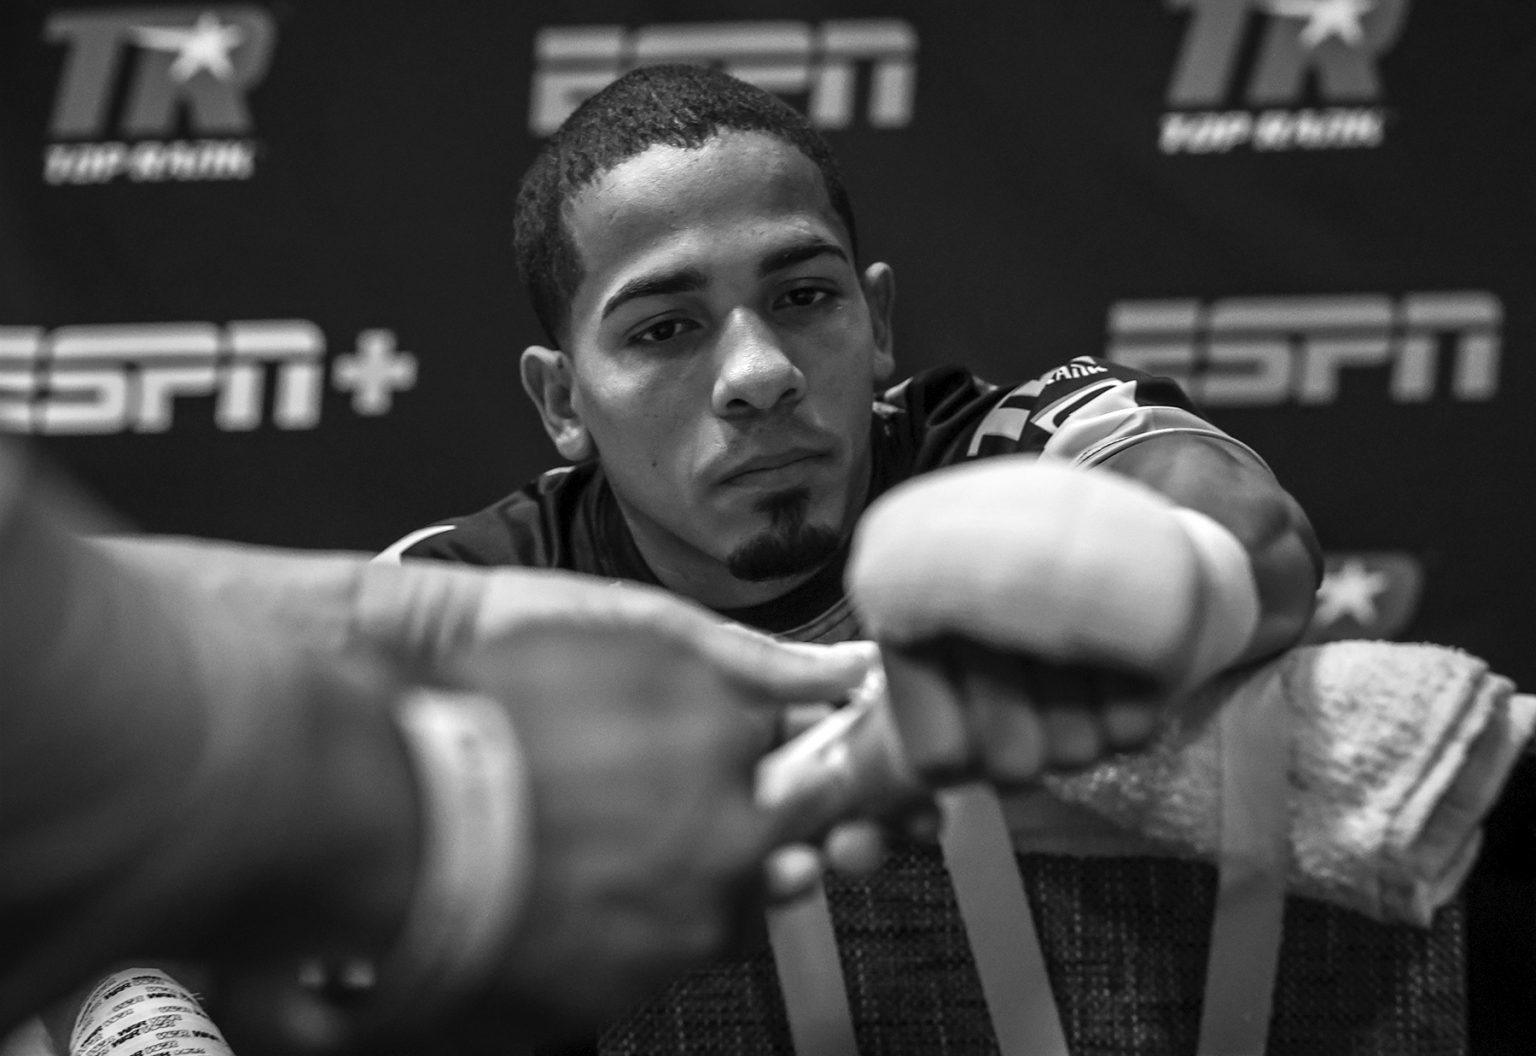 Felix Verdejo And Accomplice Officially Indicted By U.S. Department Of Justice